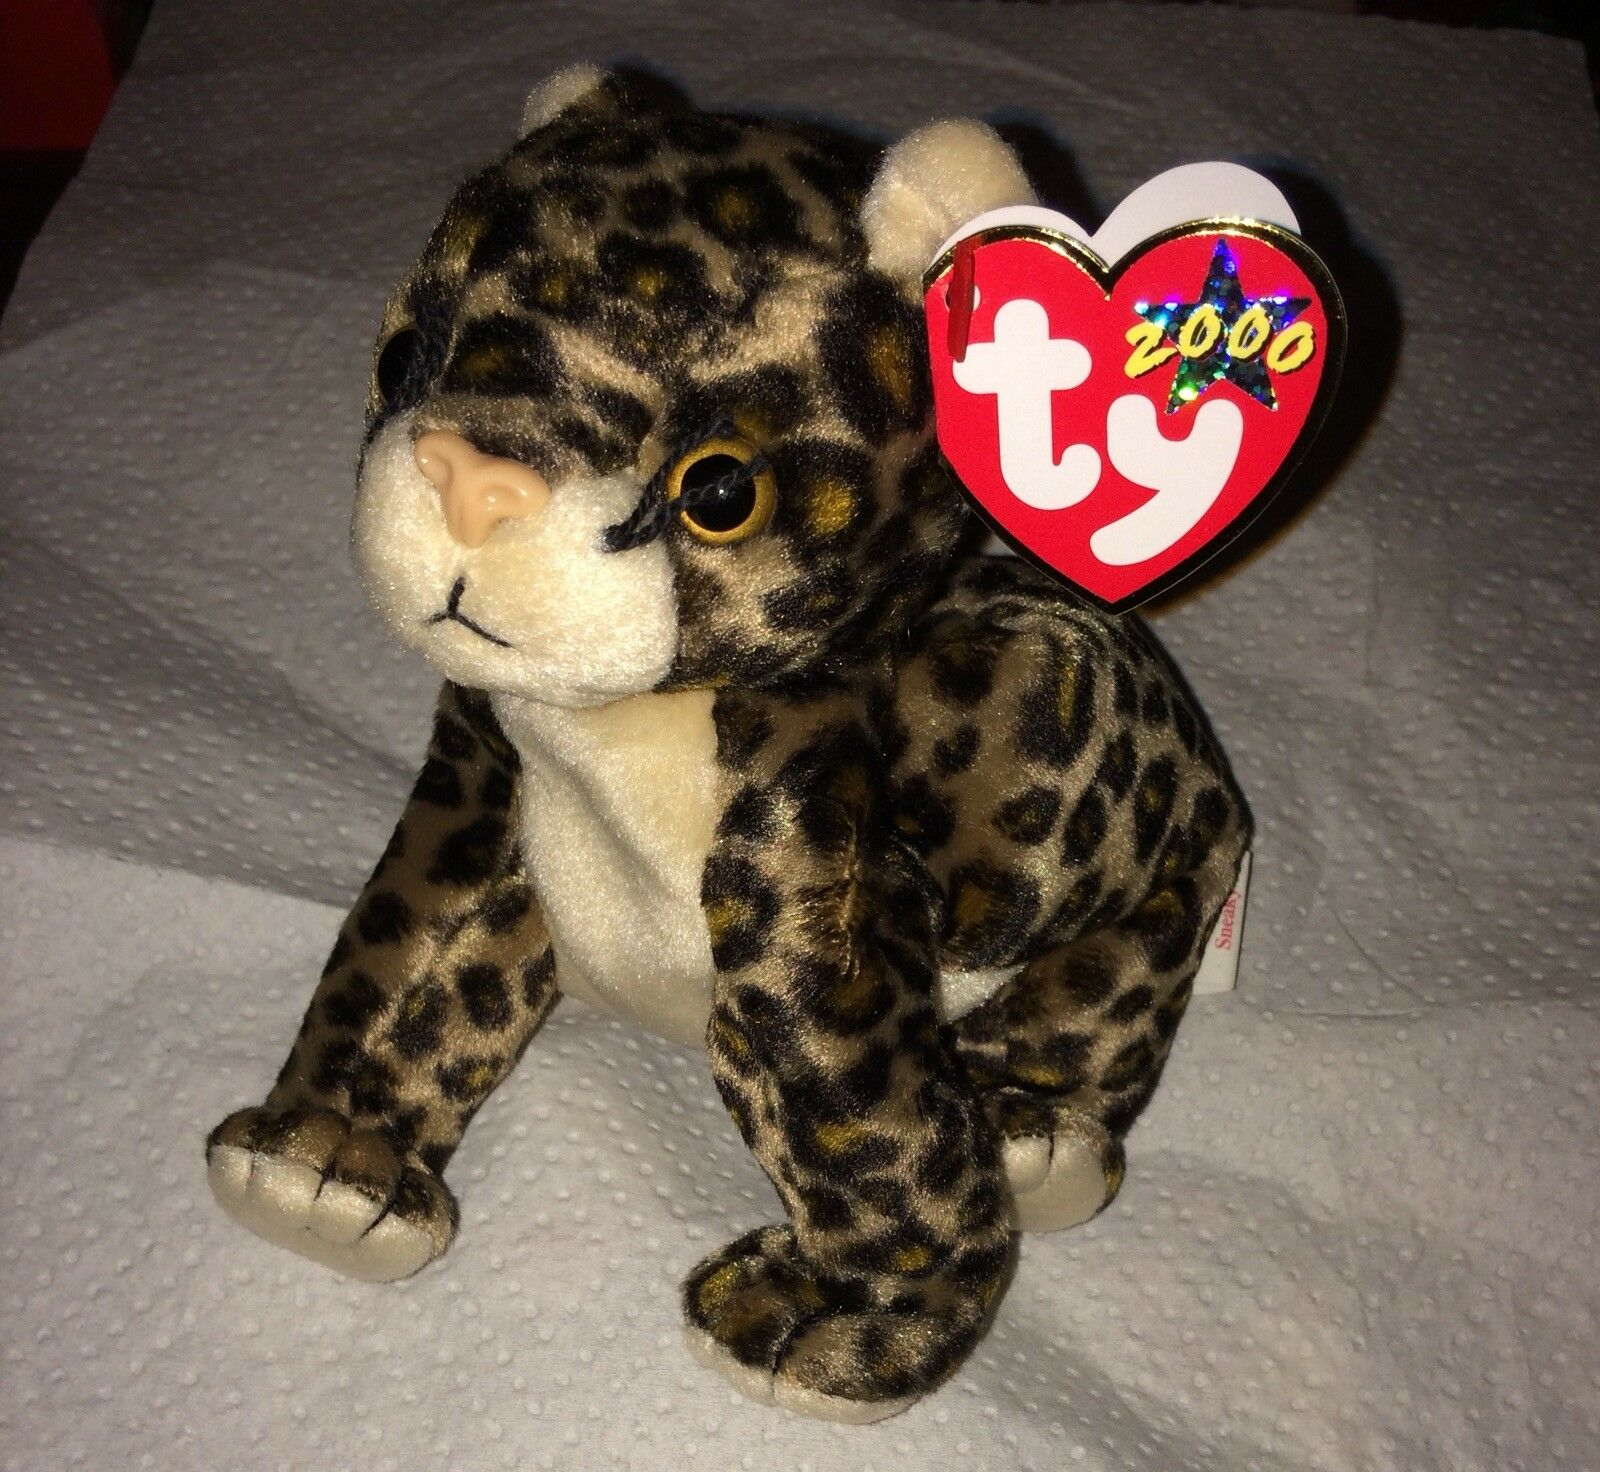 VERY RARE  Sneaky 2000 TY Beanie Baby with with with Errors on Hang and Tush Tags  3c3141